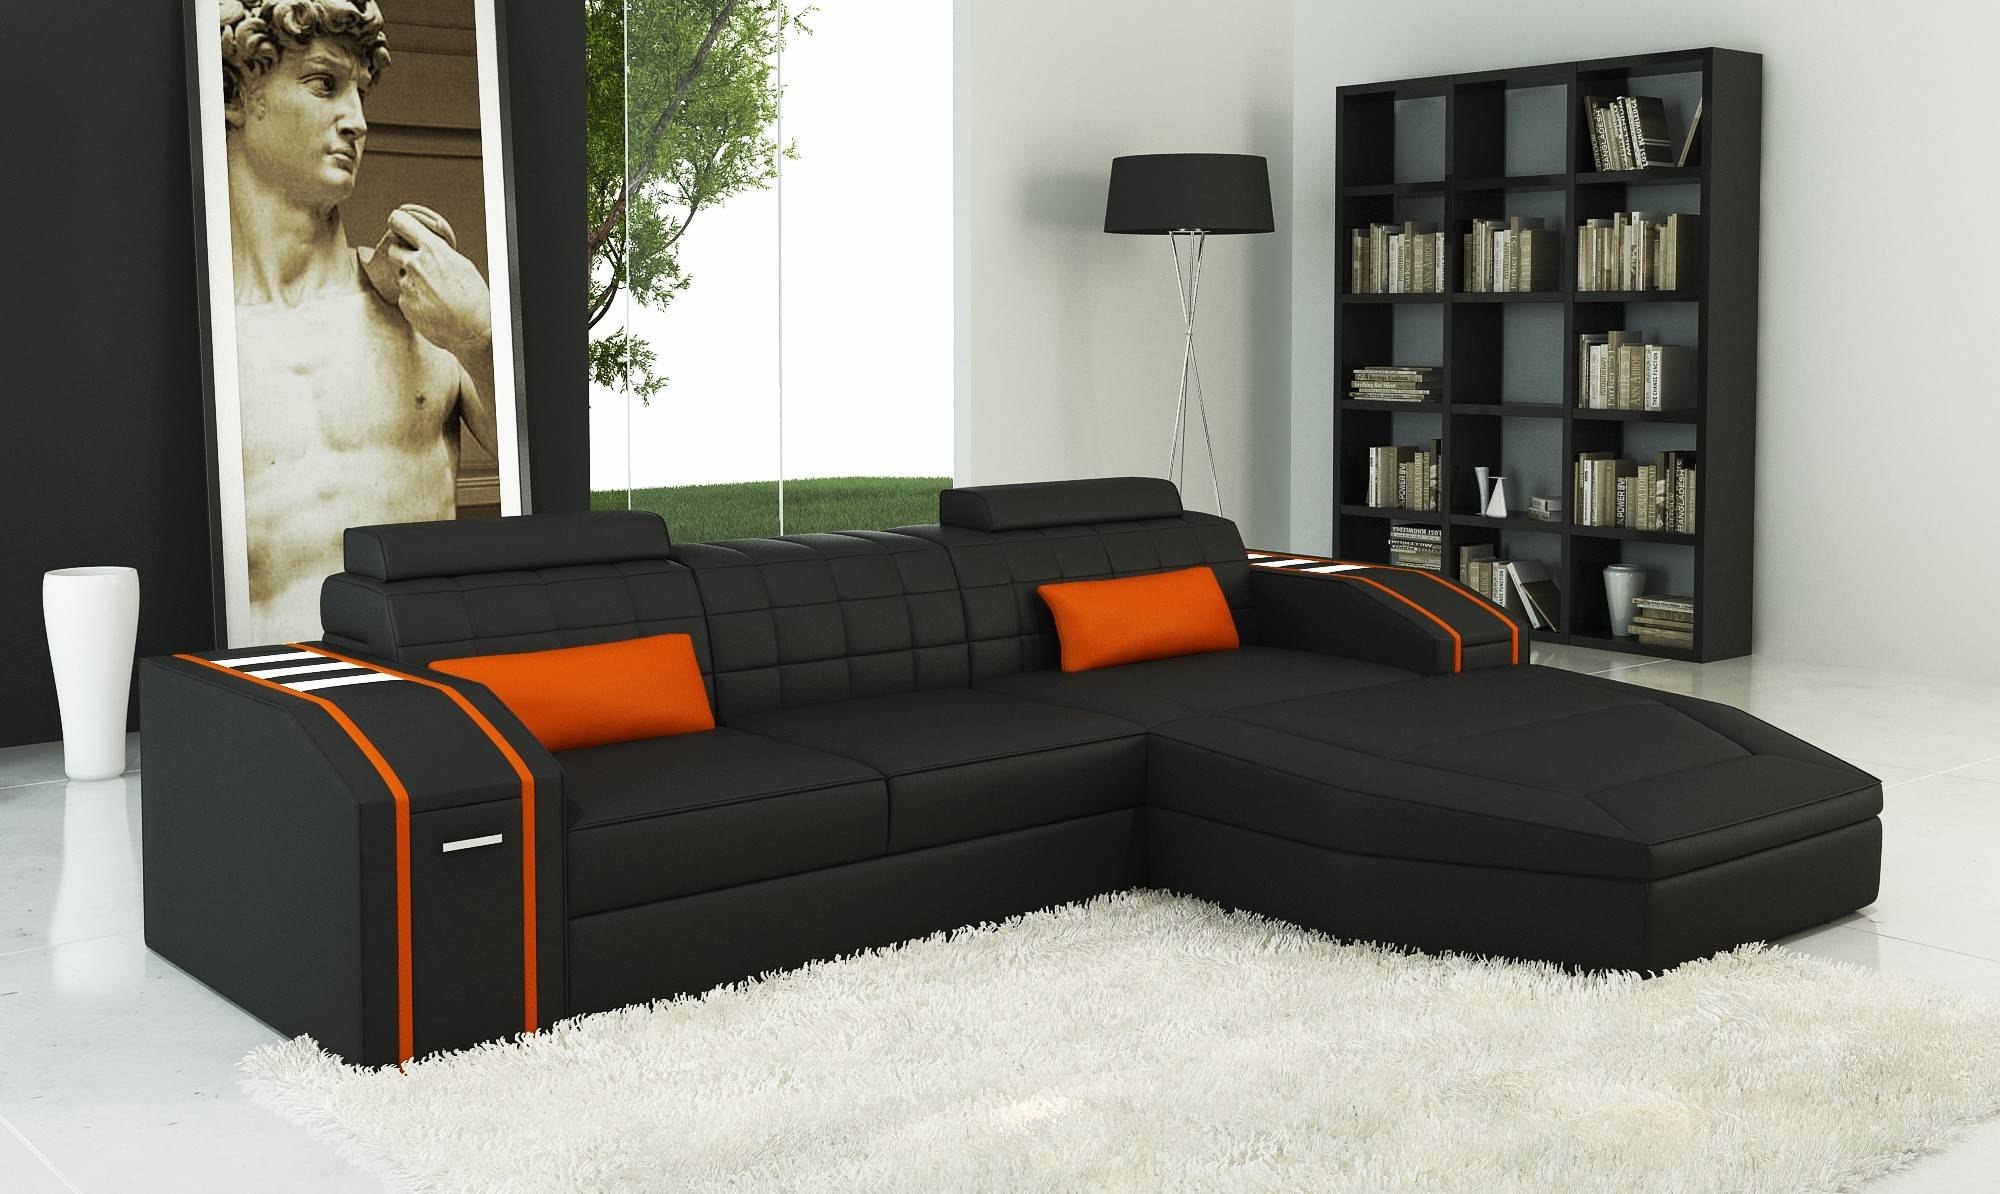 Orange Sofa Design Modern Orange Leather Couch. Orange Sofa Design intended for Orange Sofa Chairs (Image 14 of 15)